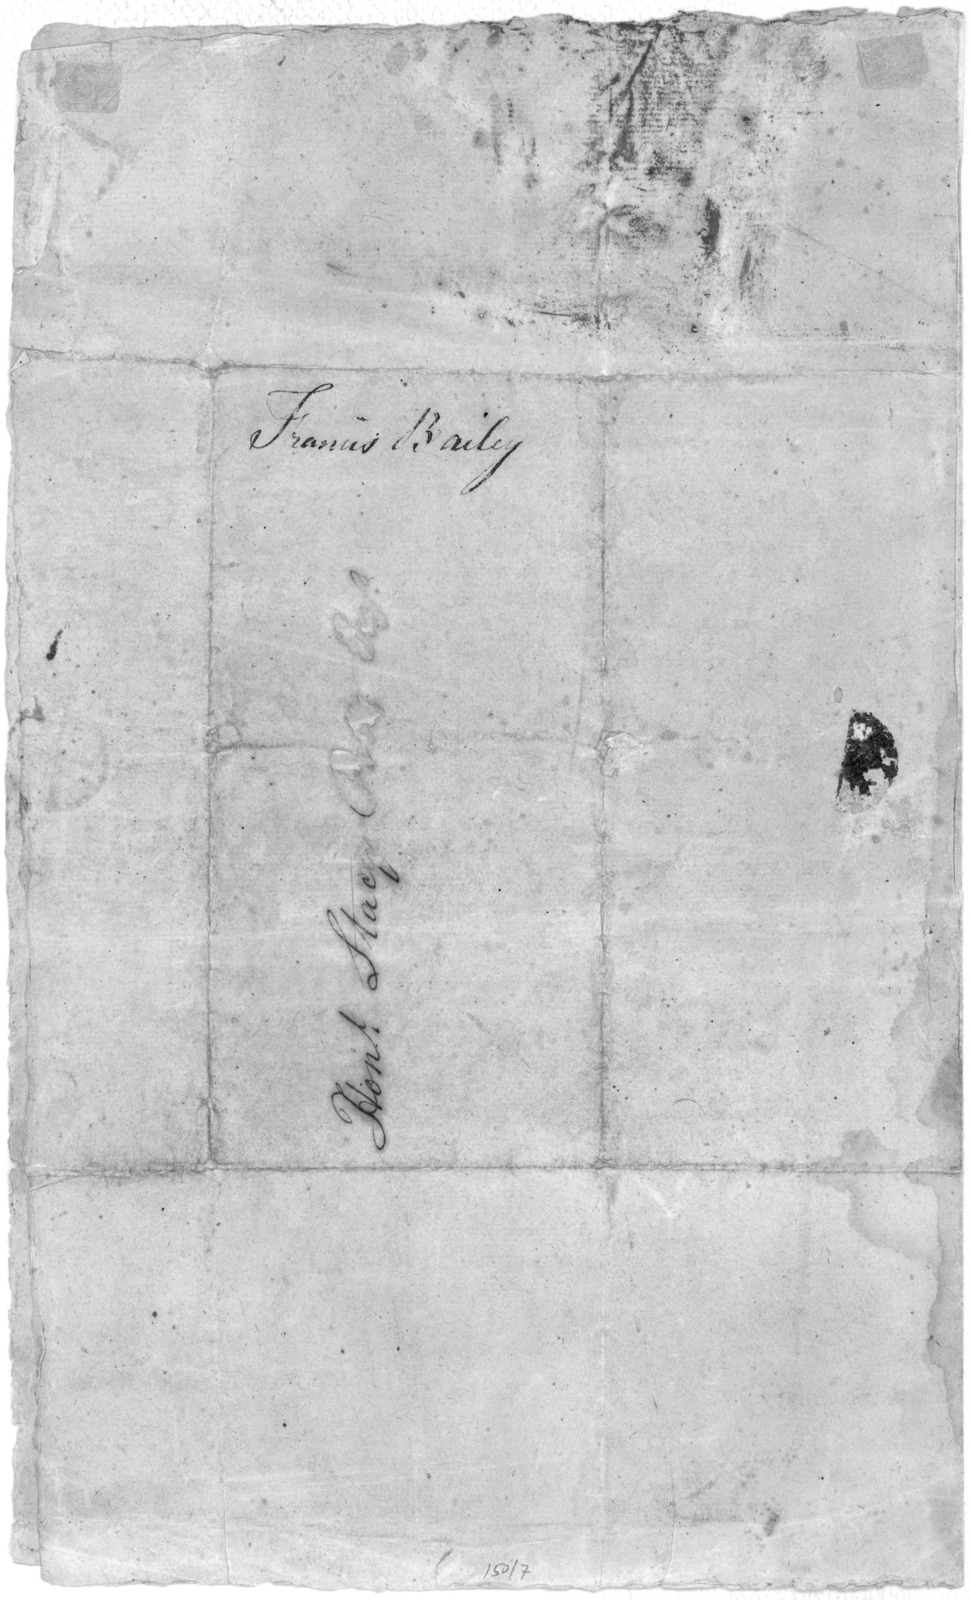 """Lancaster, January 4th, 1802. Honorable Sir. The following is a copy of an anonymous piece, without date, addressed- """"Mr. Francis Bailey, State printer, Lancaster.""""- Delivered by the Sergeant-at-arms of the House of Representatives on the 31st D"""